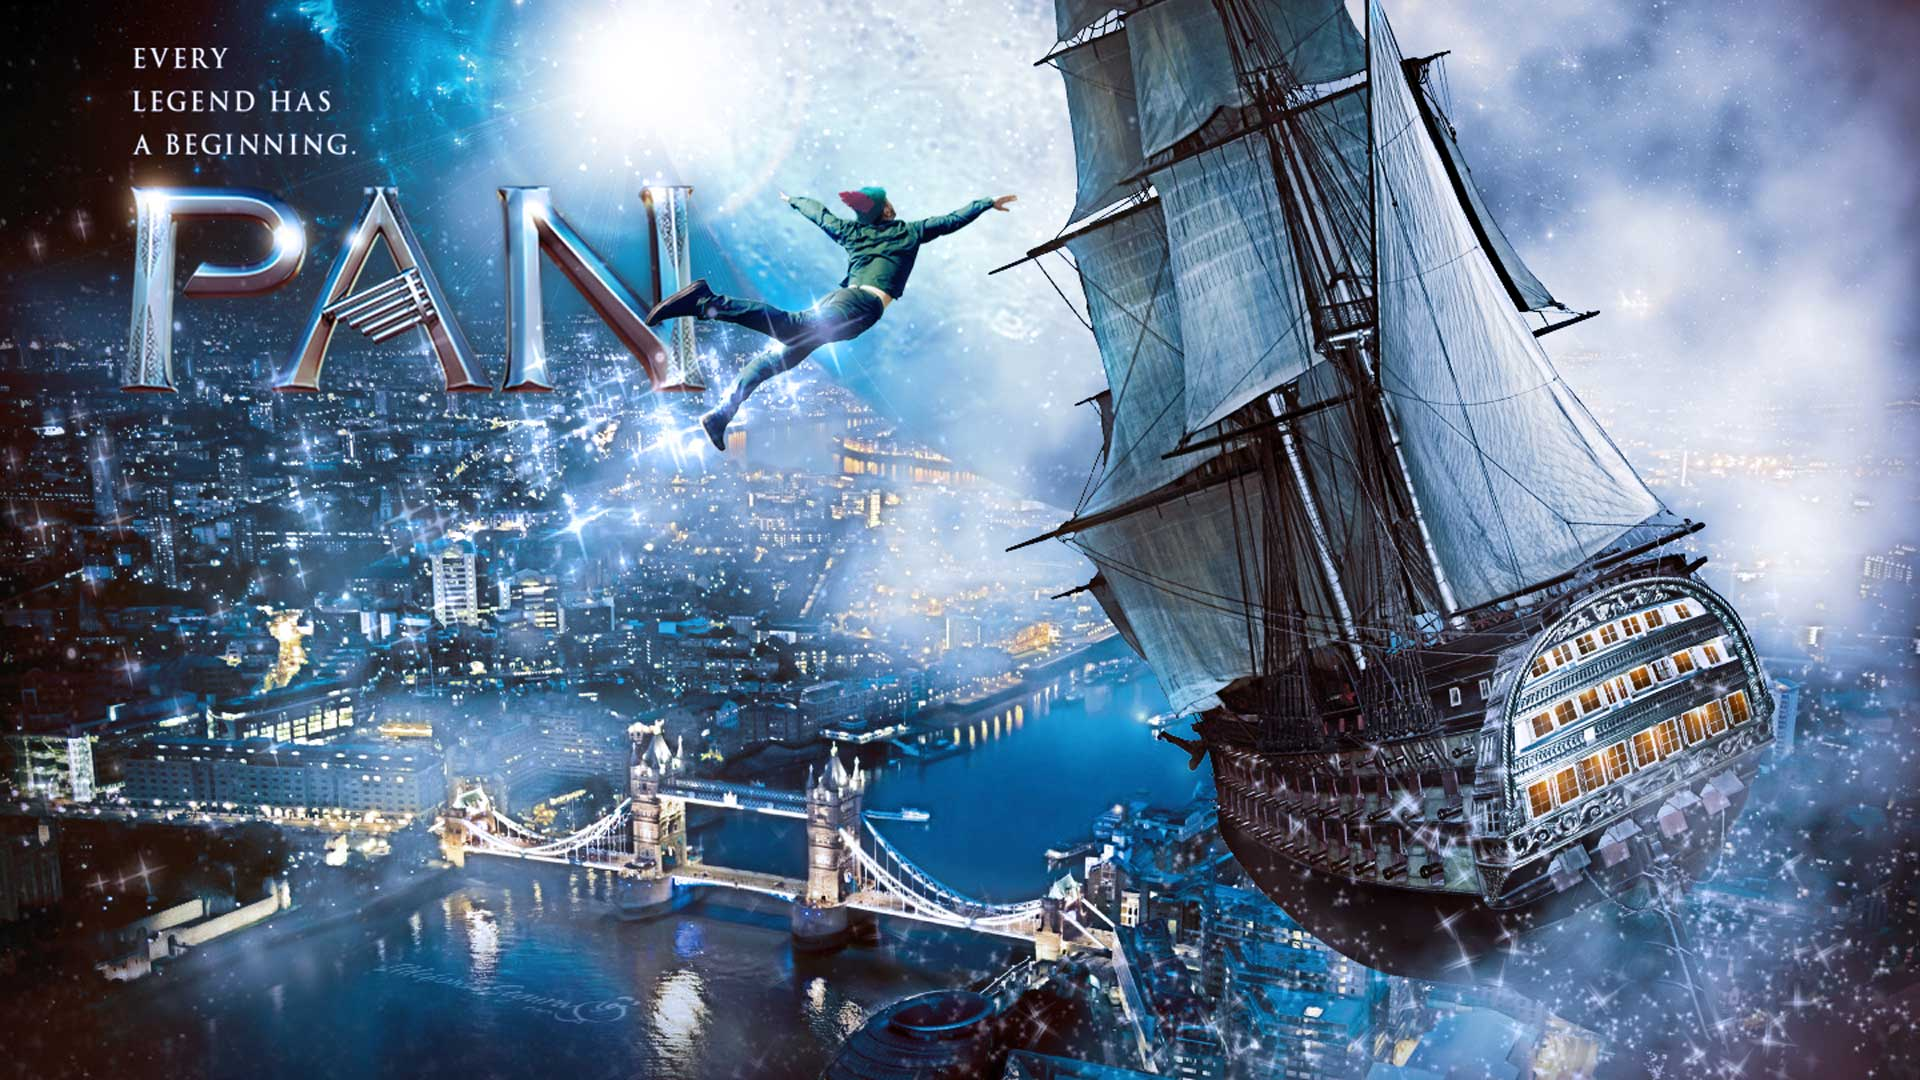 Tutorial Photoshop // Fotomontaje Peter Pan #Panmovie by @ildefonsosegura